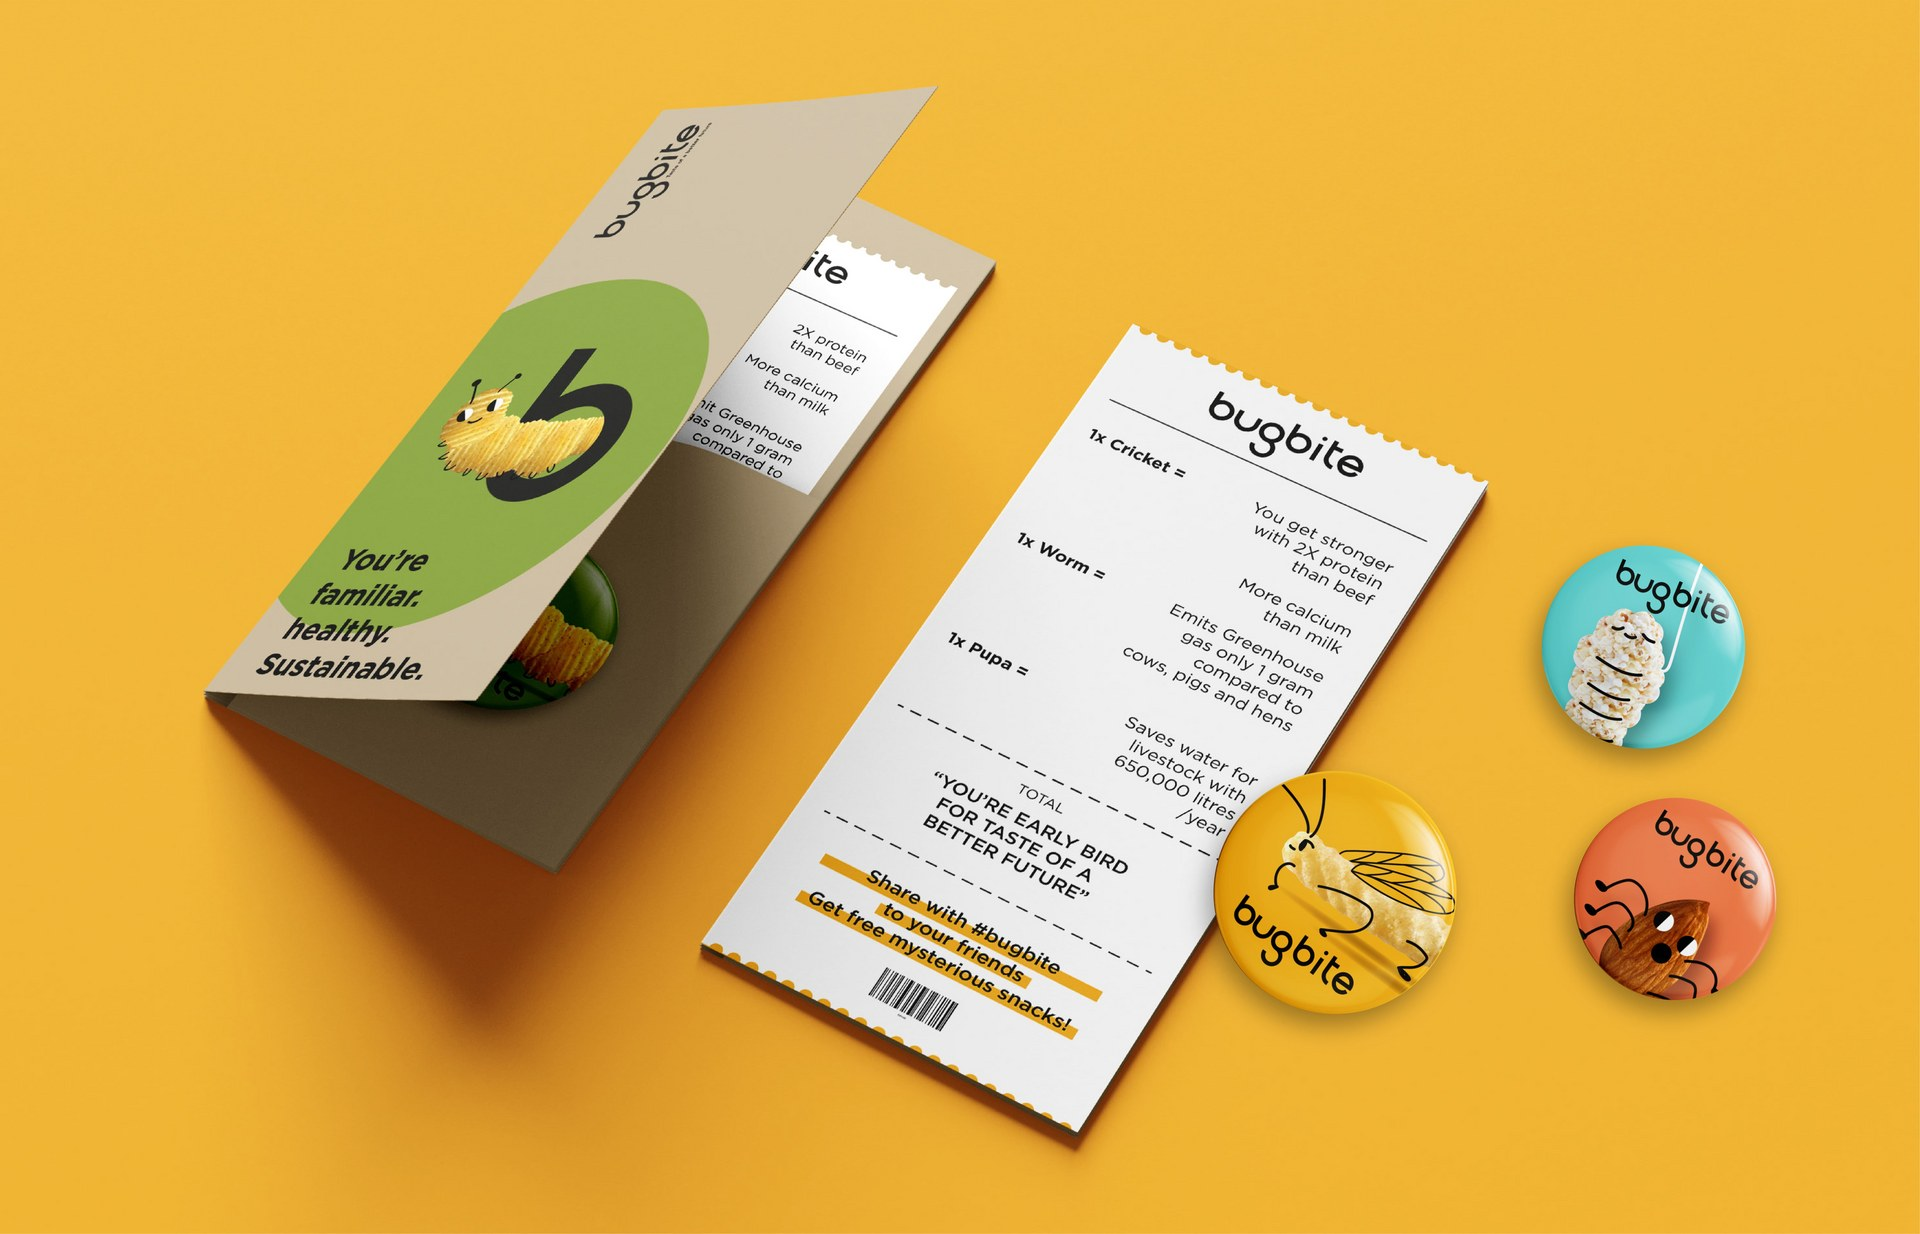 Bugbite special receipt — telling about benefits of eating bugs in terms of health and environment